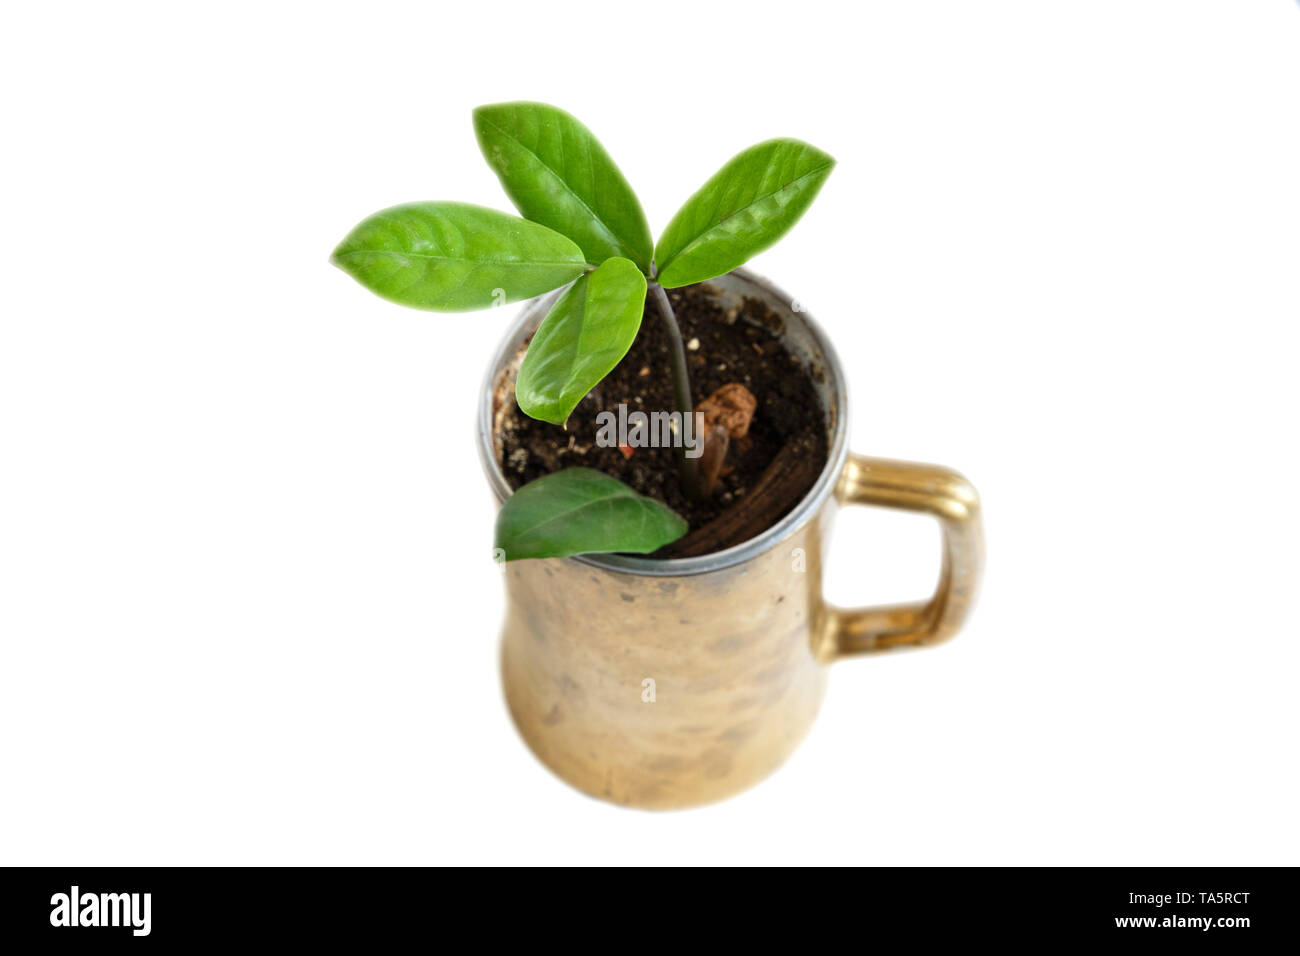 Cells for seedlings at home. Growing plants on the windowsill. Stock Photo